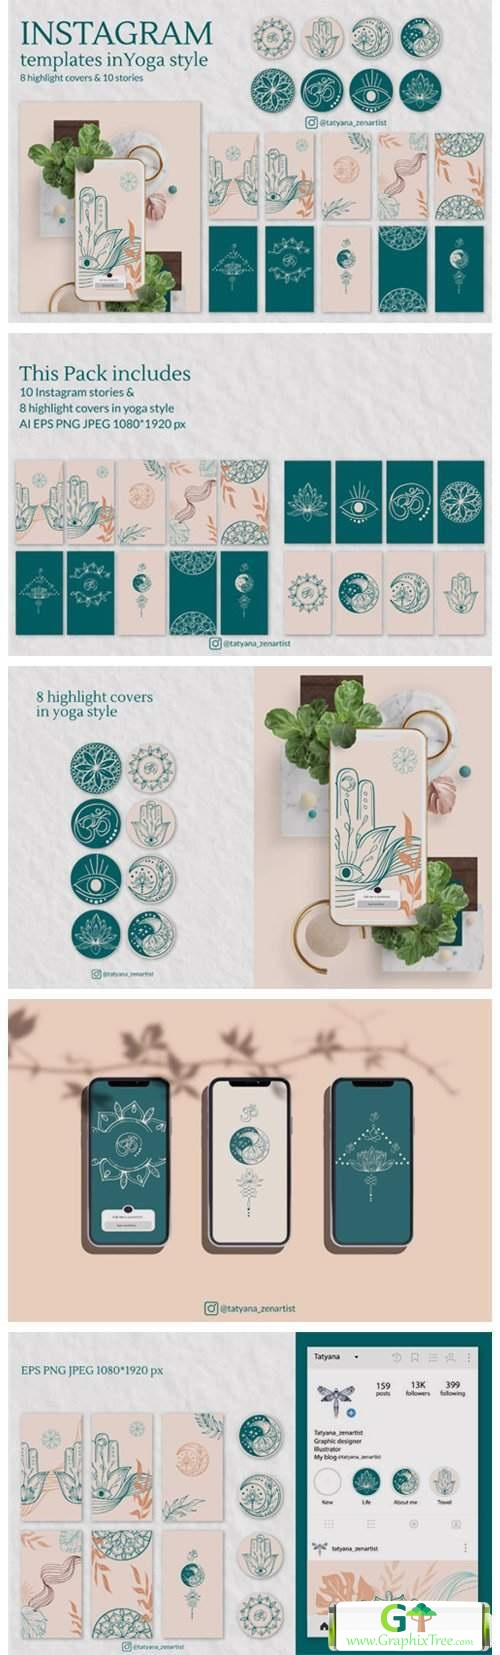 Instagram Template in Yoga Style Vers. 2 [Vector] [3D And Element Object & Web]